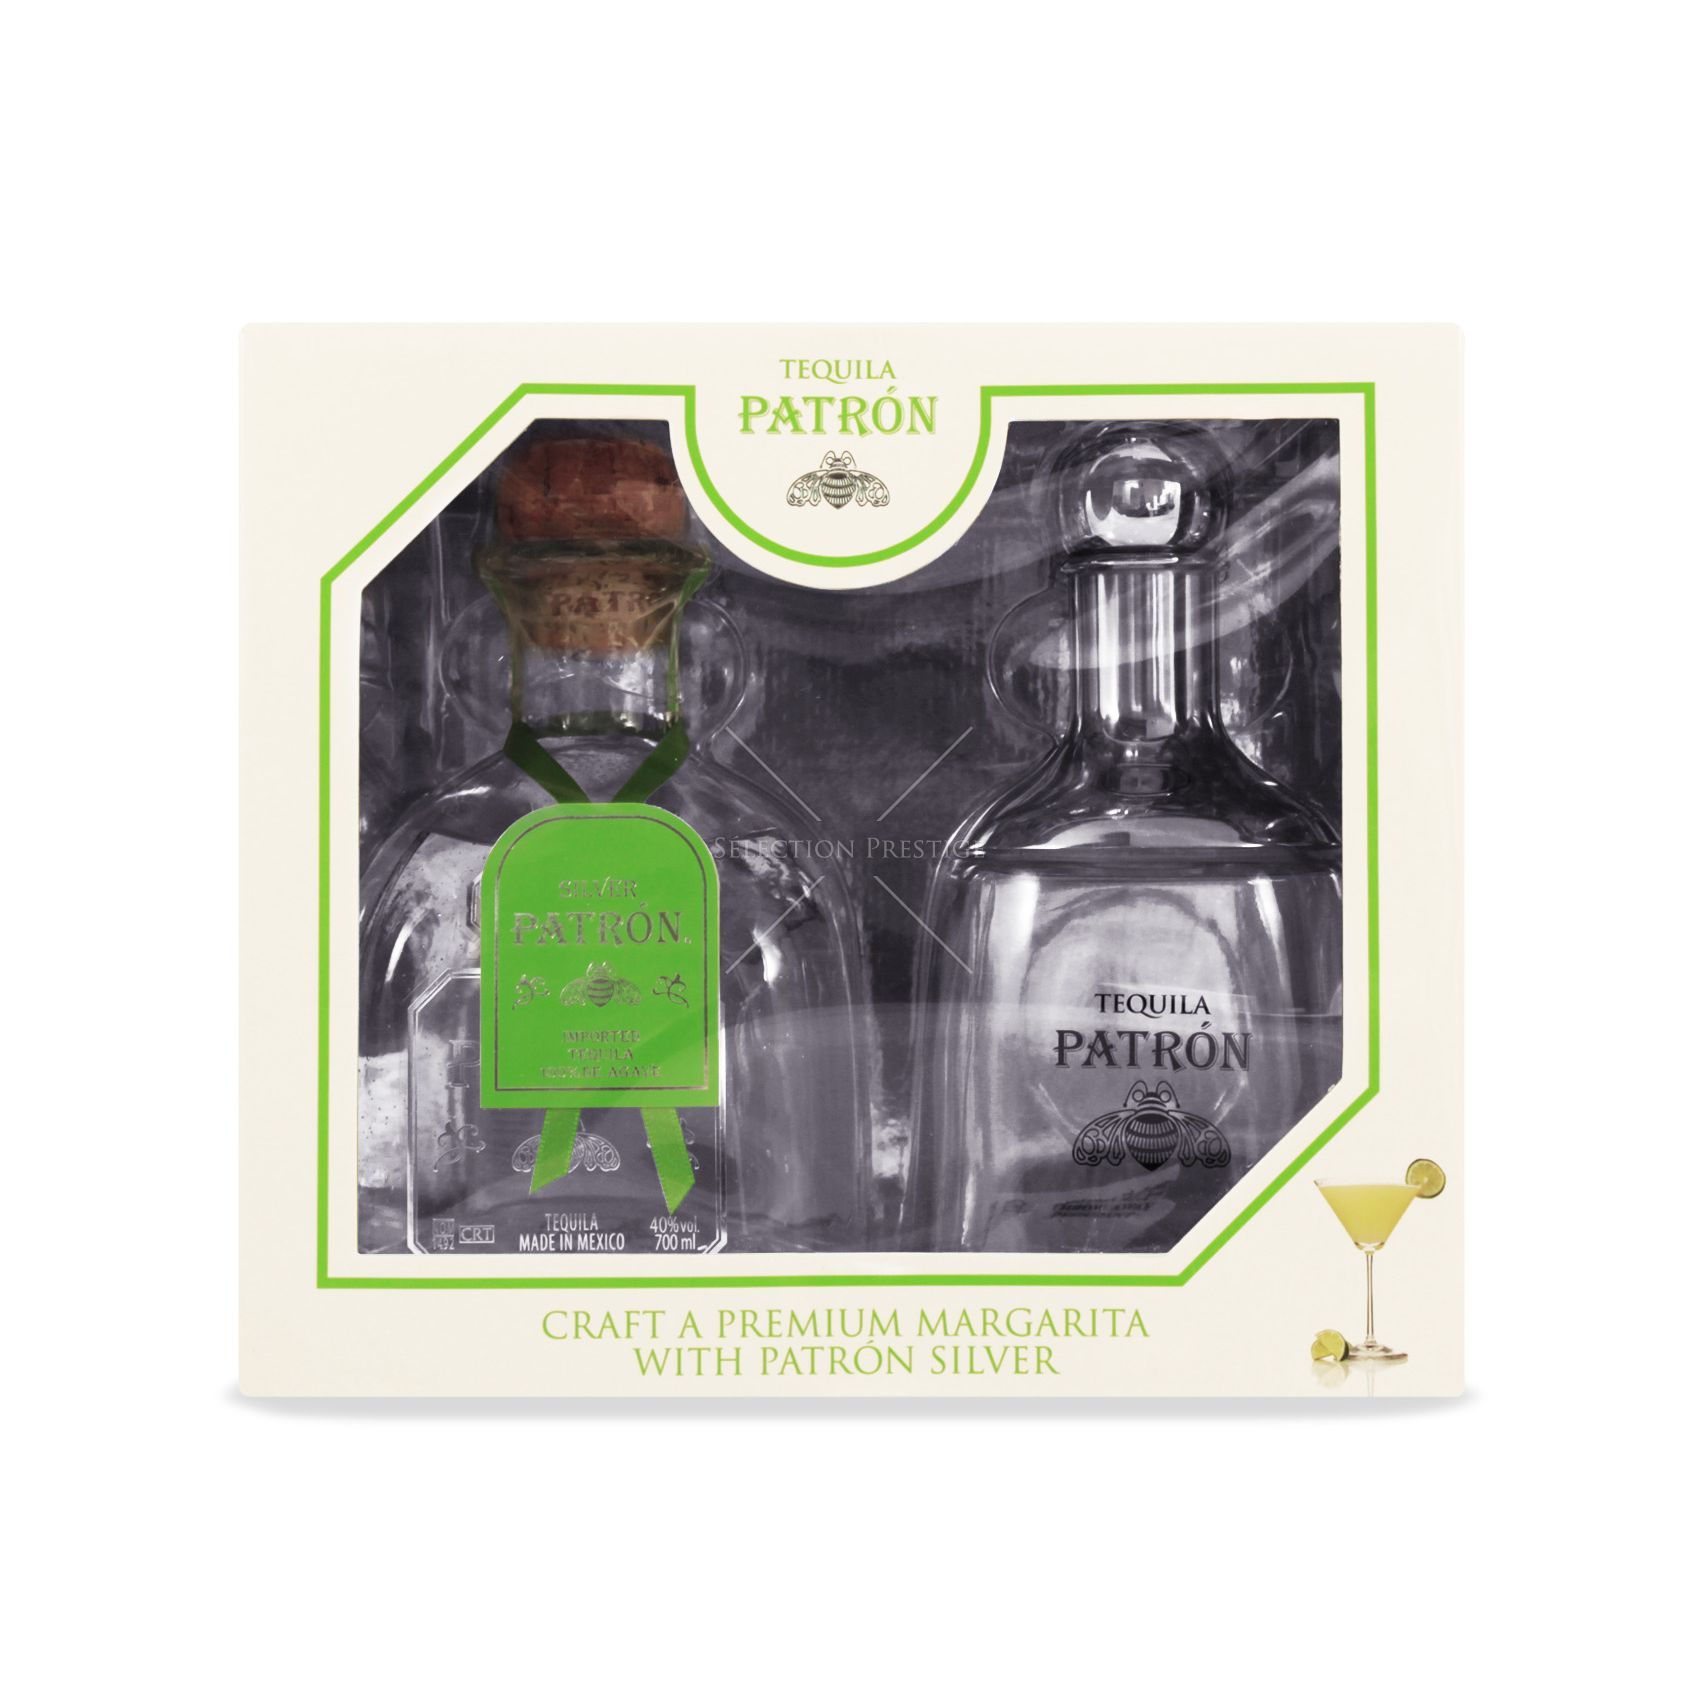 Patrón Silver Tequila Gift Set with Shaker - Patrón - Tequila